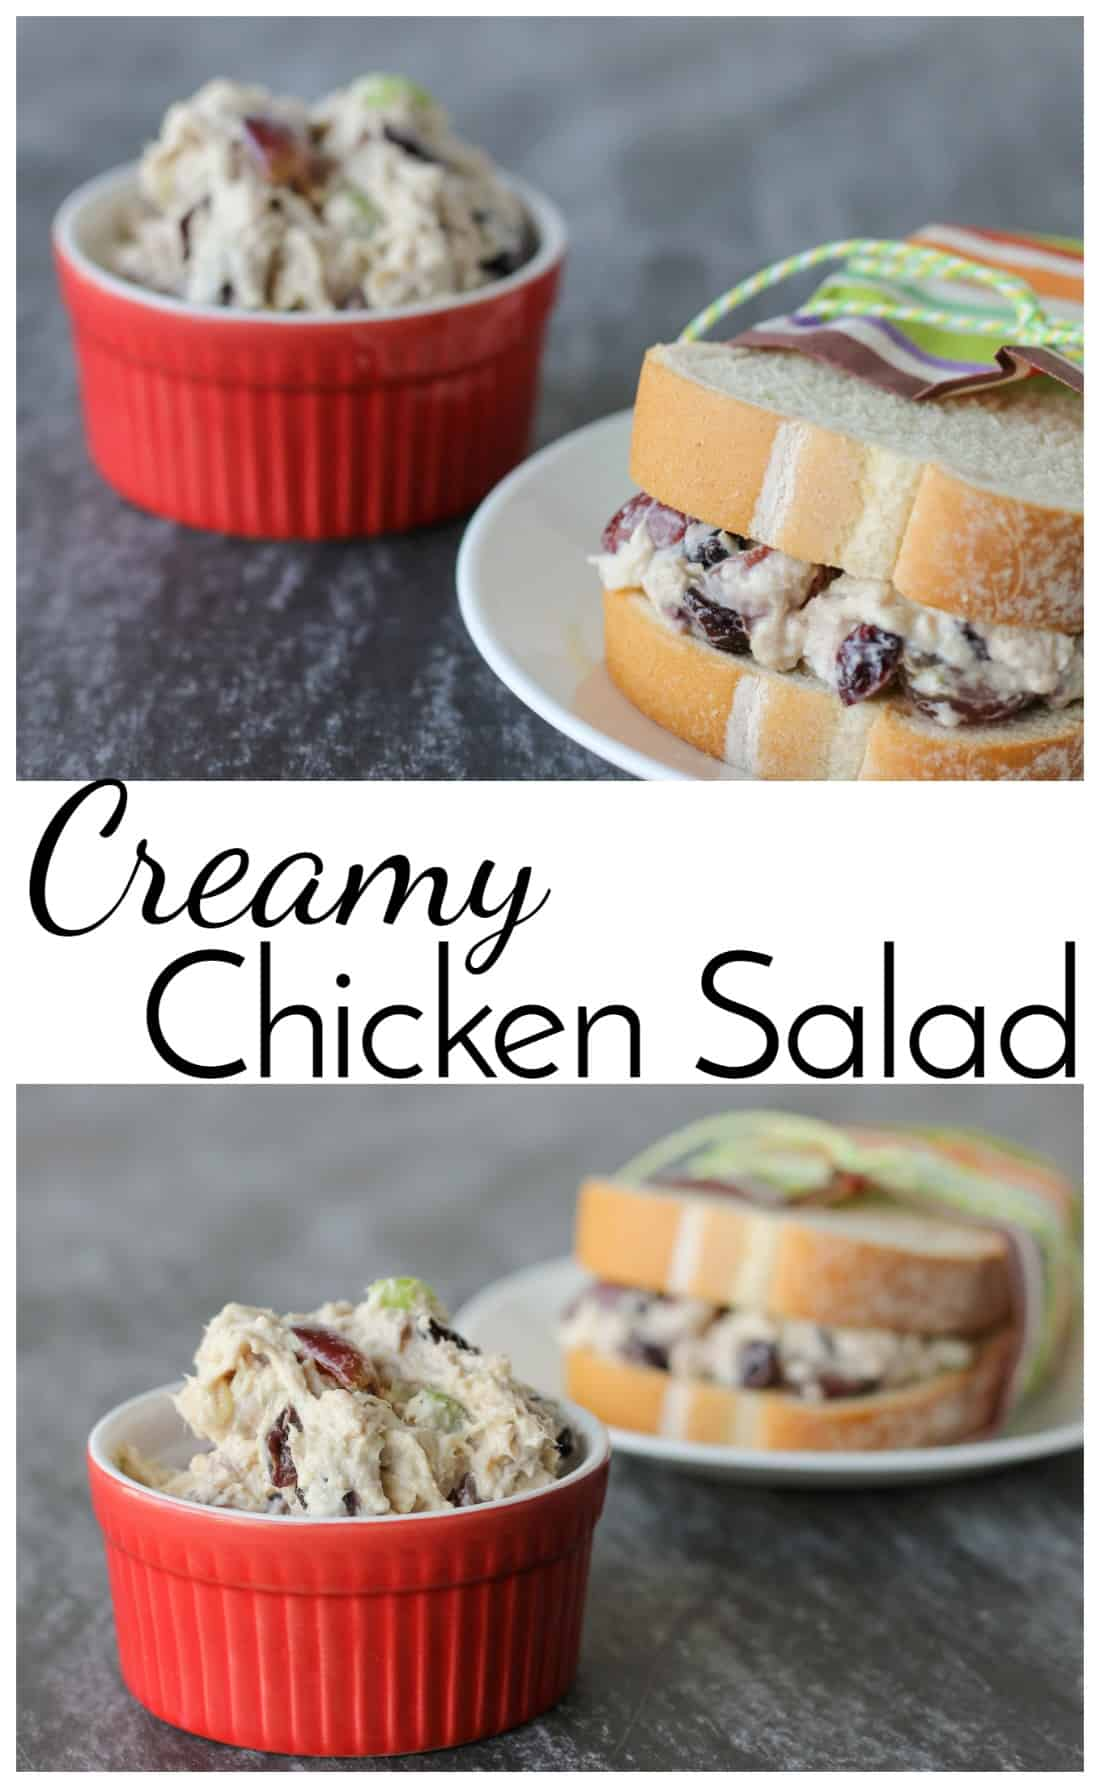 Creamy Chicken Salad is a delicious lunch option and a great way to use up leftover chicken. Don't forget all the yummy add-ins that make this recipe unique! via @nmburk